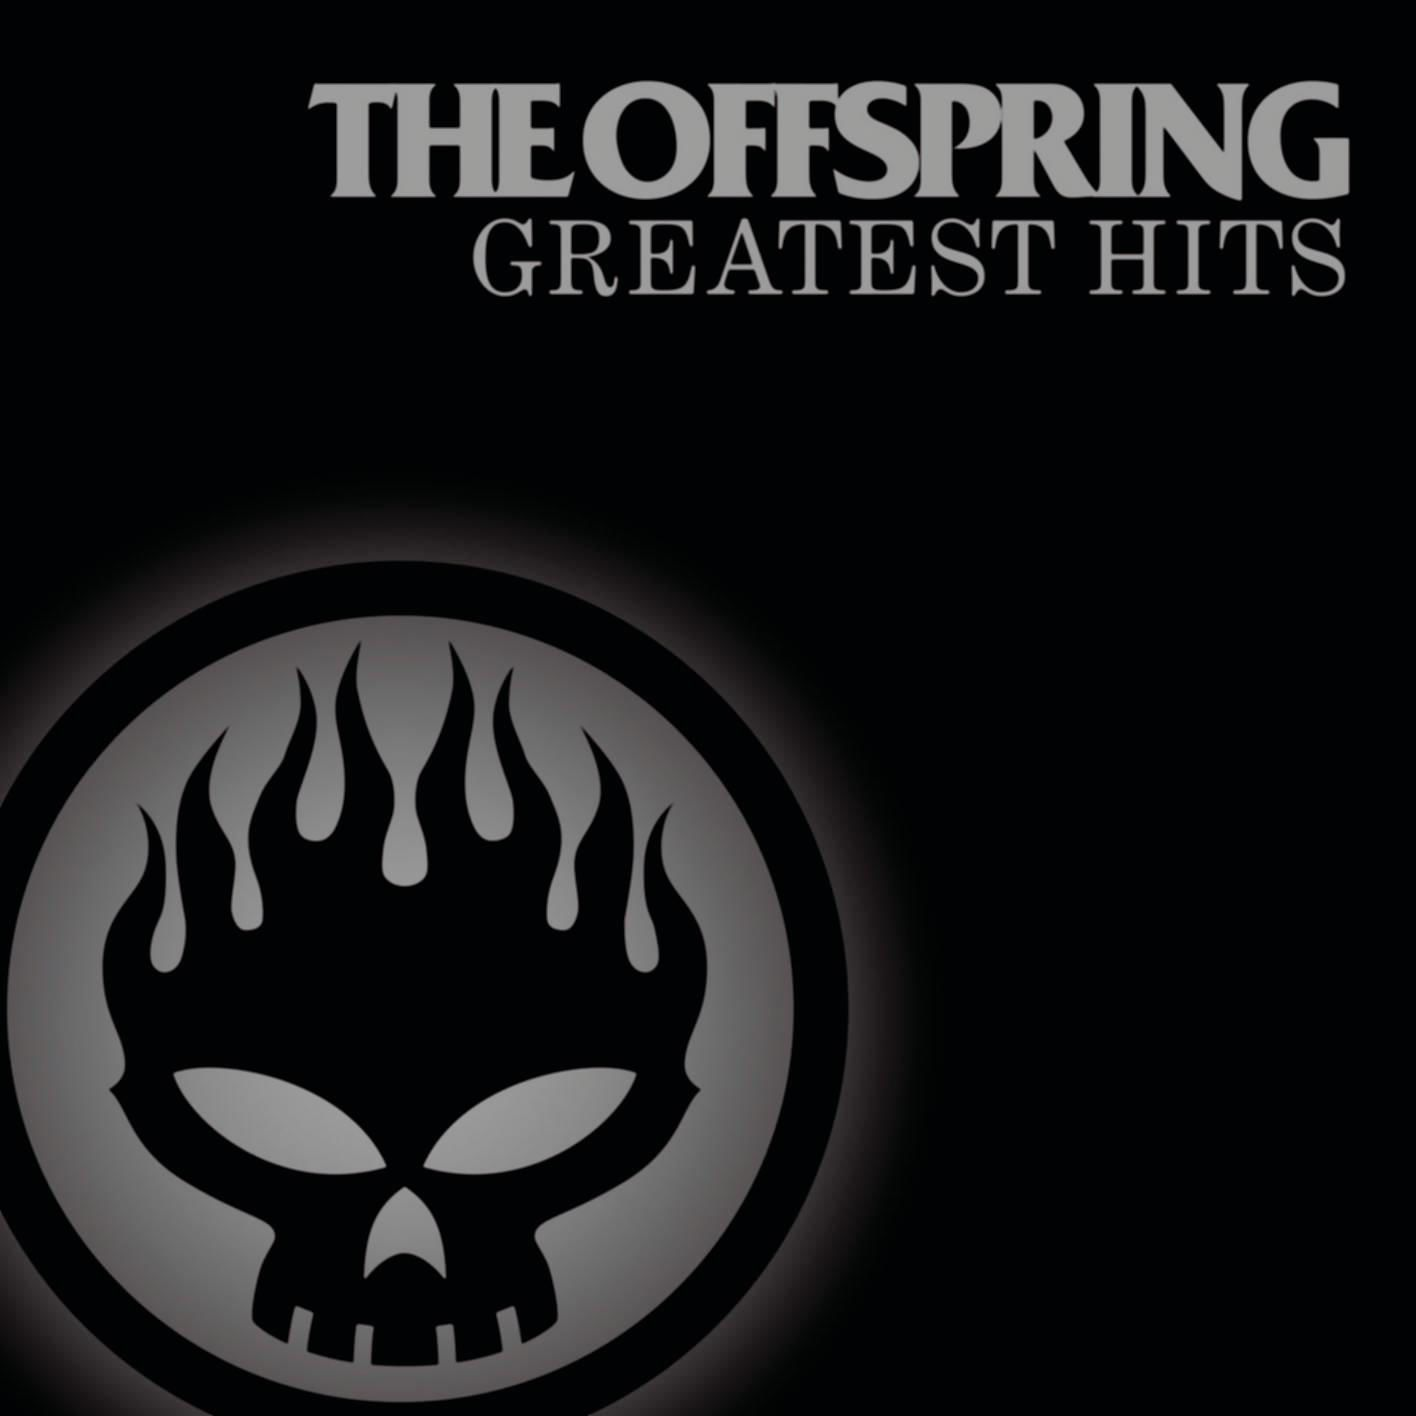 The Offspring - Greatest Hits album cover